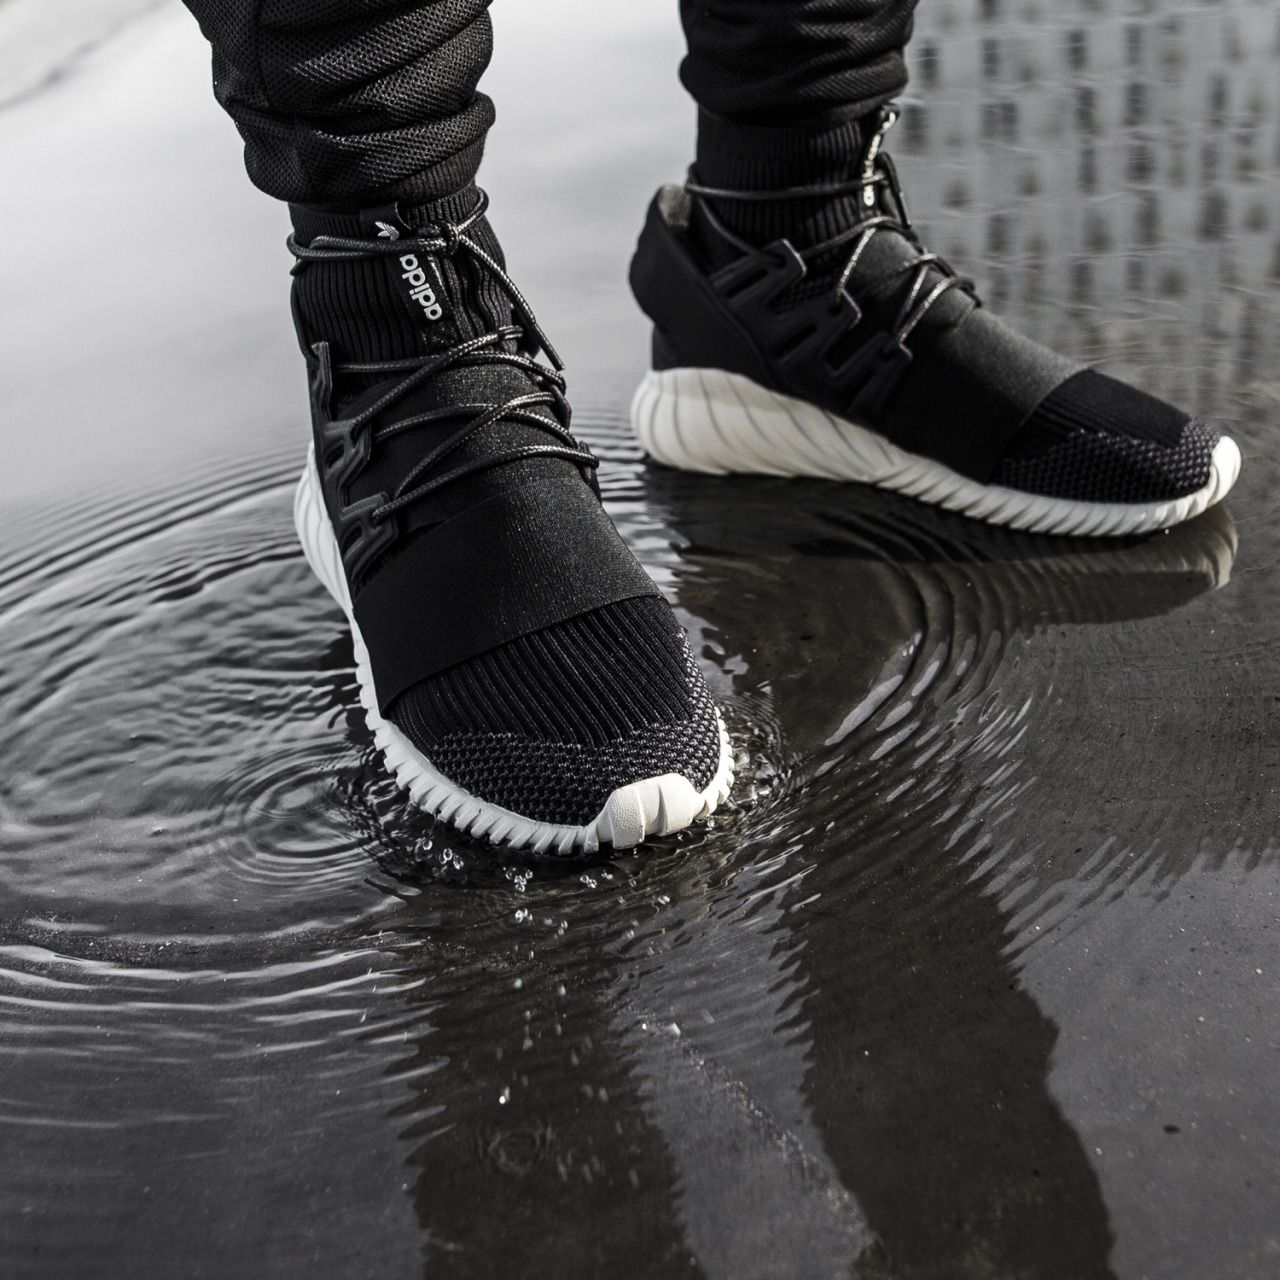 new style 3a2c8 afaa9 Adidas Tubular Doom PK (via mxdvs) - MENSTYLED